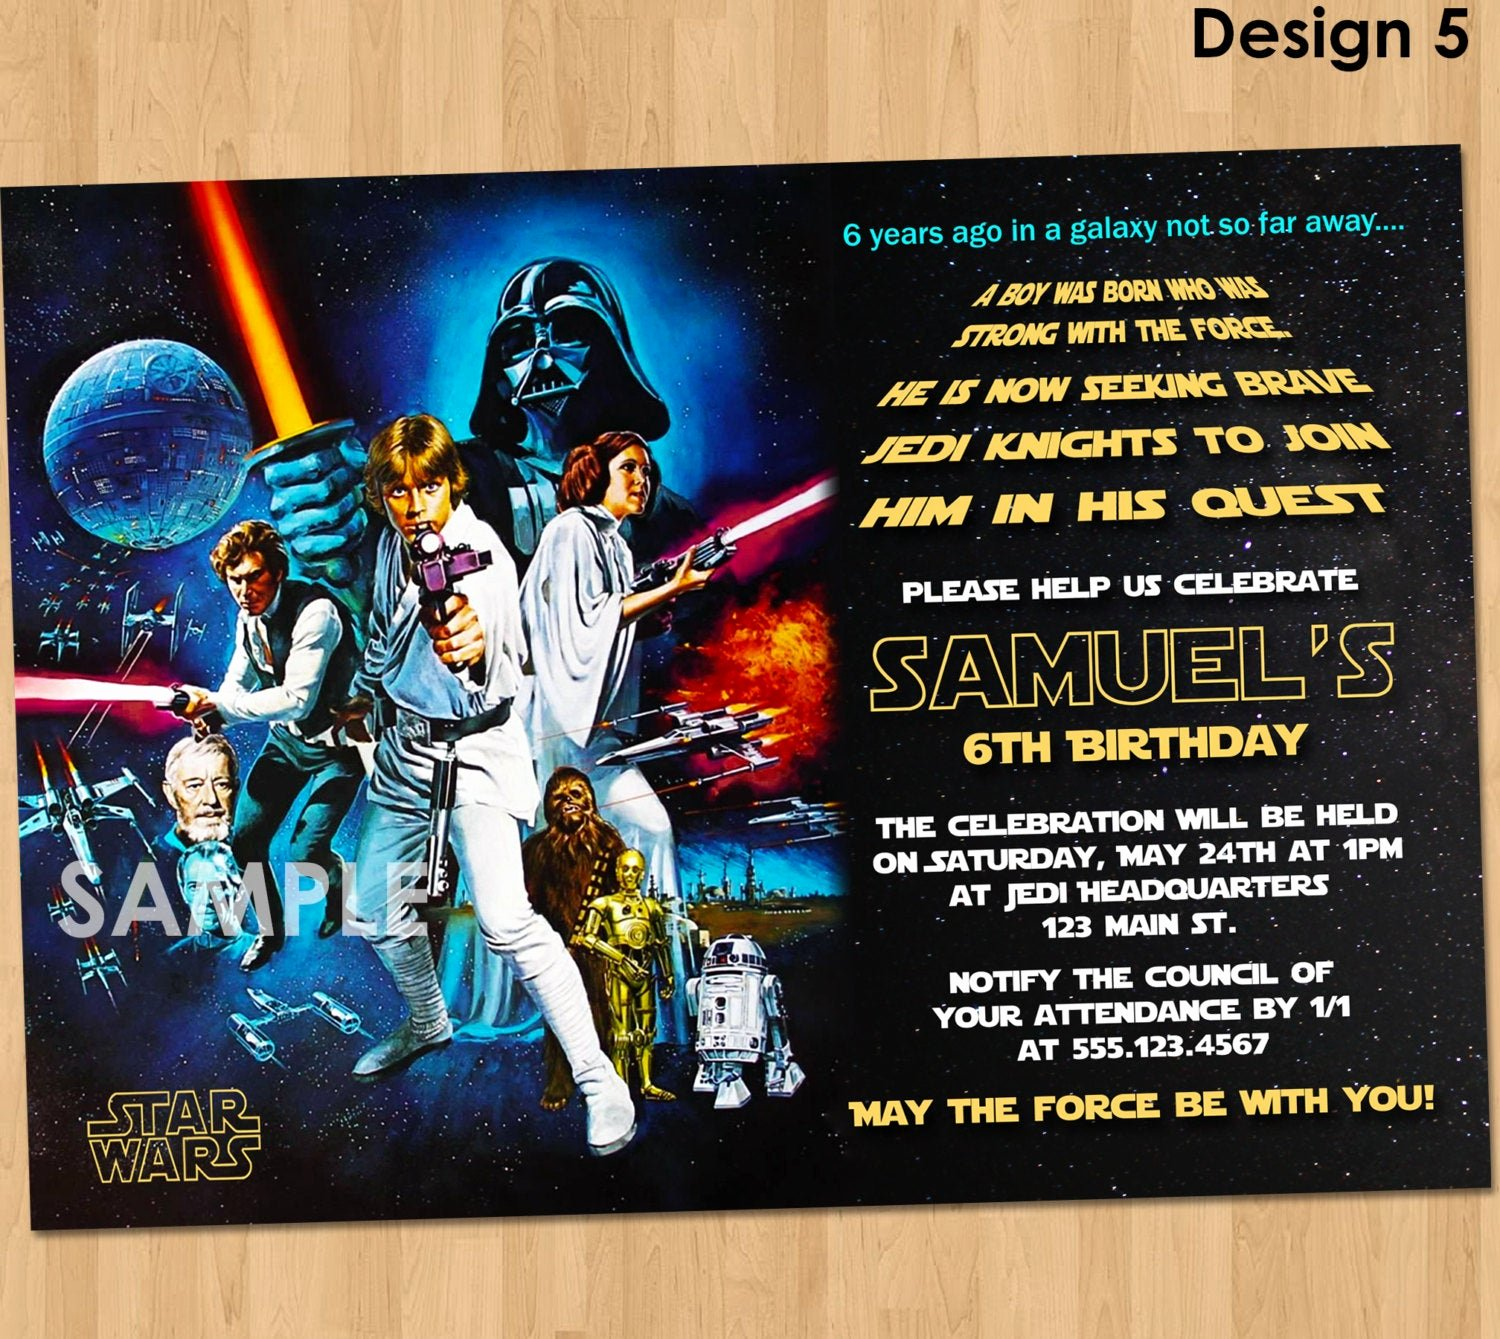 Star Wars Birthday Invitation New Star Wars Birthday Invitation Star Wars Invitation Birthday